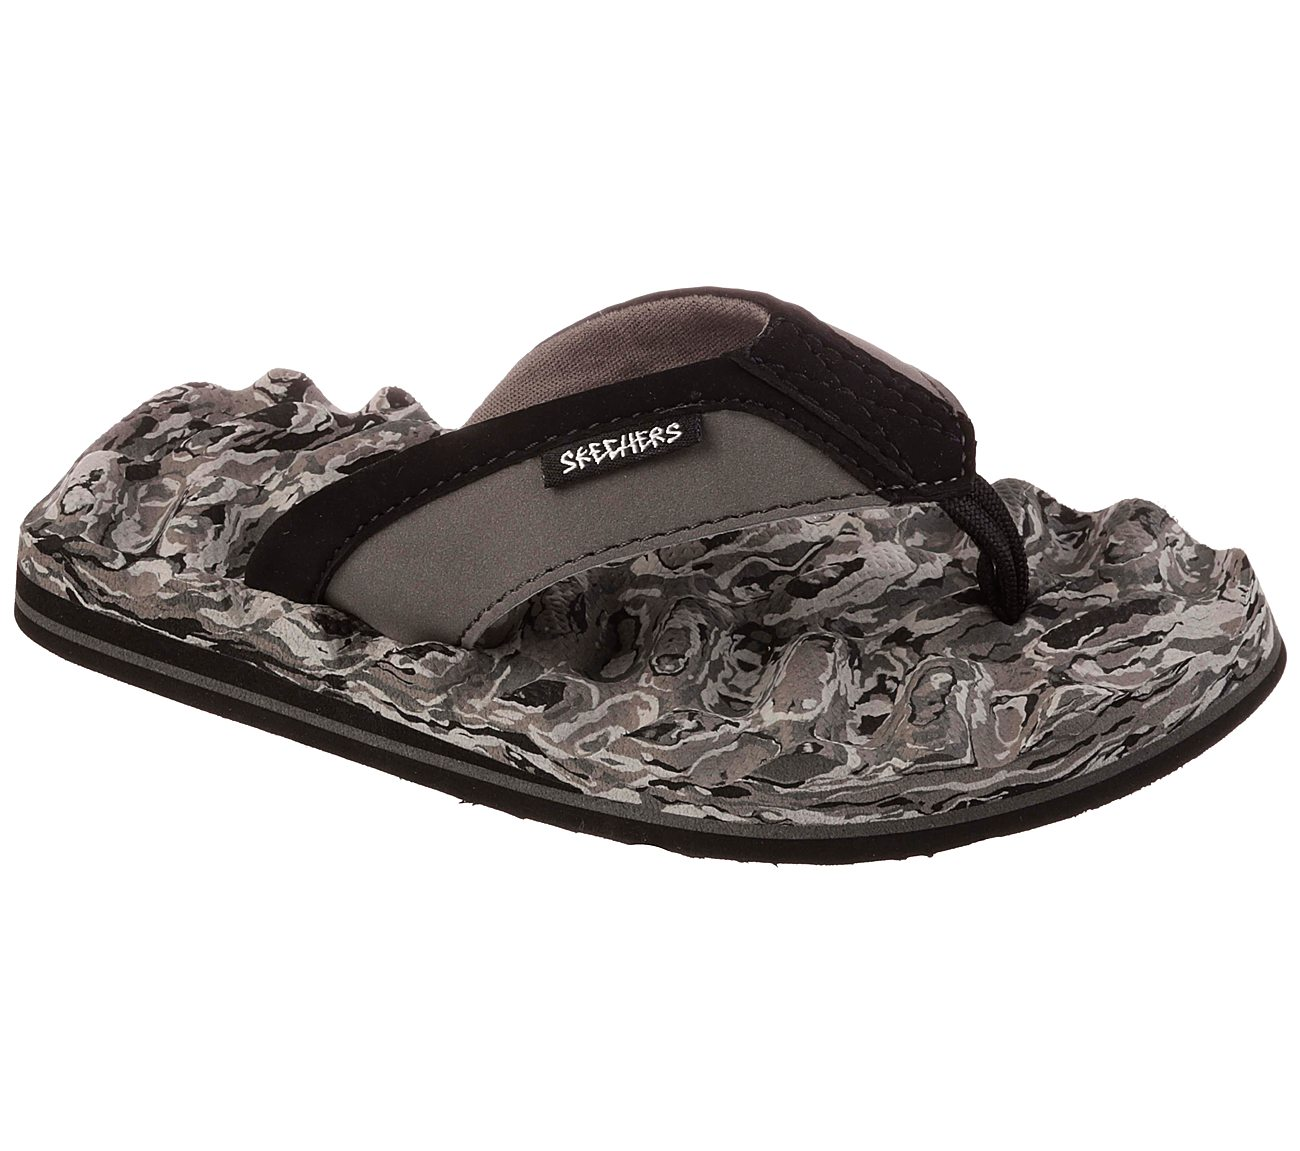 276d2b663068 Buy SKECHERS Vacated Flip Flops Shoes only  24.00